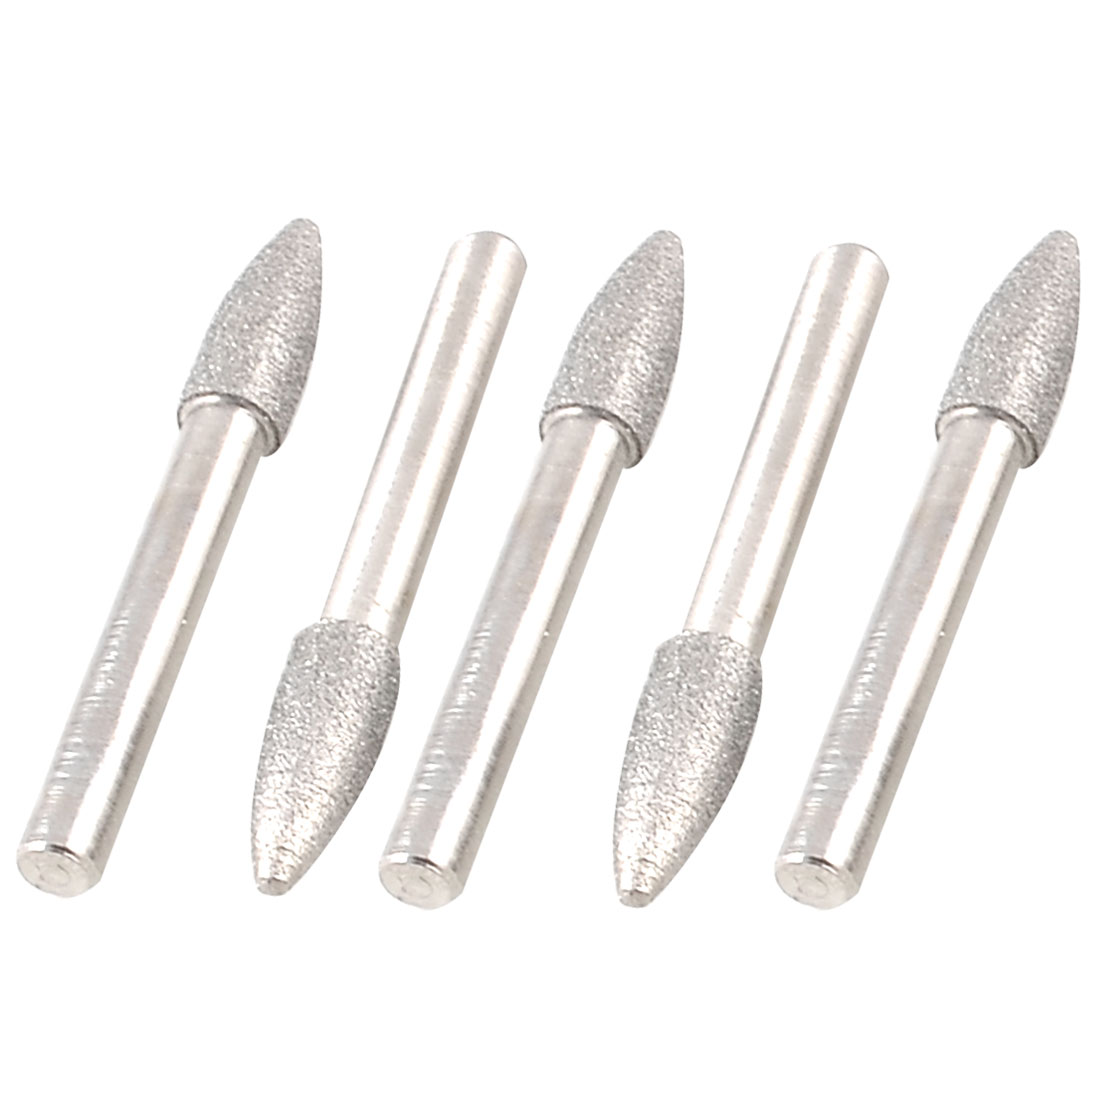 5 Pcs 8mm Taper Head 6mm Shank Polisher Diamond Mounted Point Grinding Bits